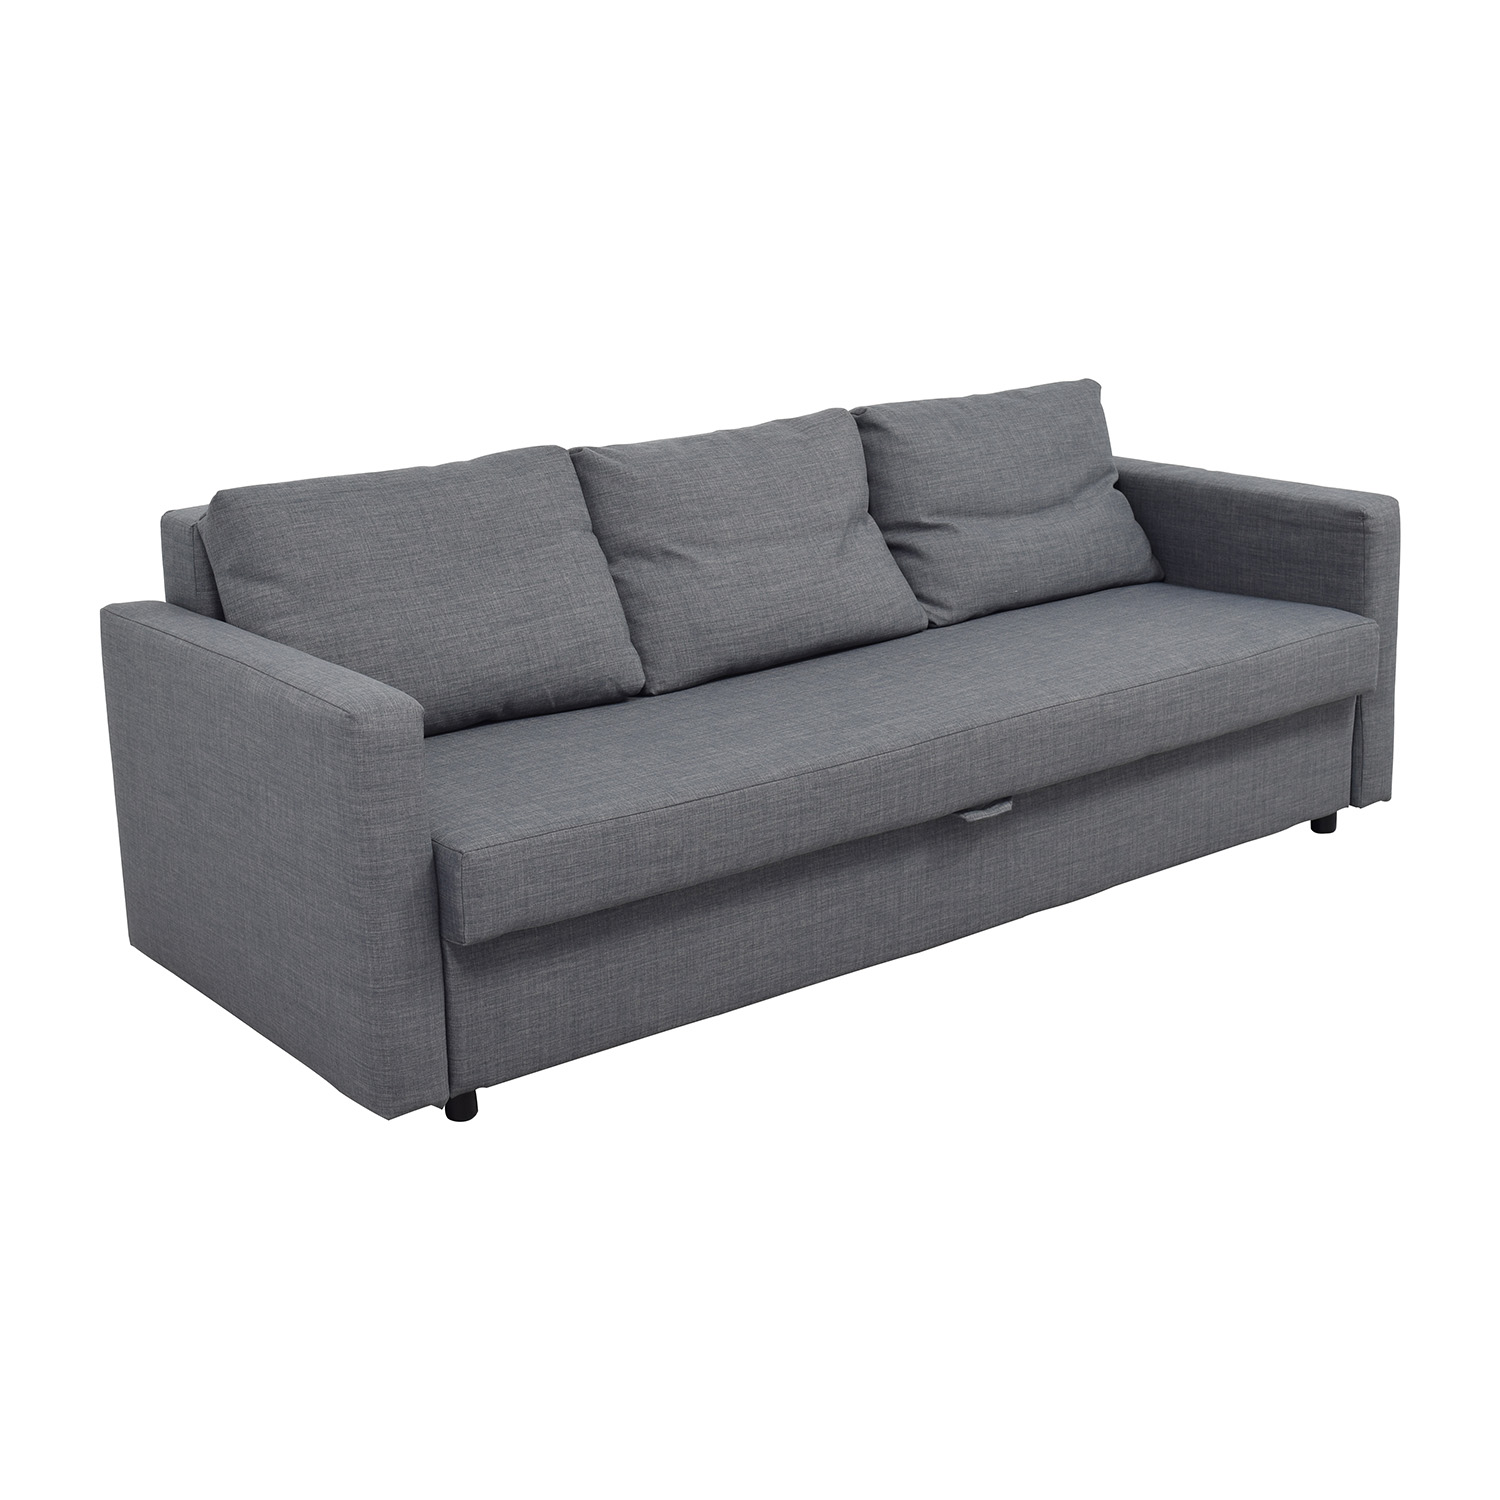 32 off ikea ikea friheten grey sleeper sofa sofas. Black Bedroom Furniture Sets. Home Design Ideas